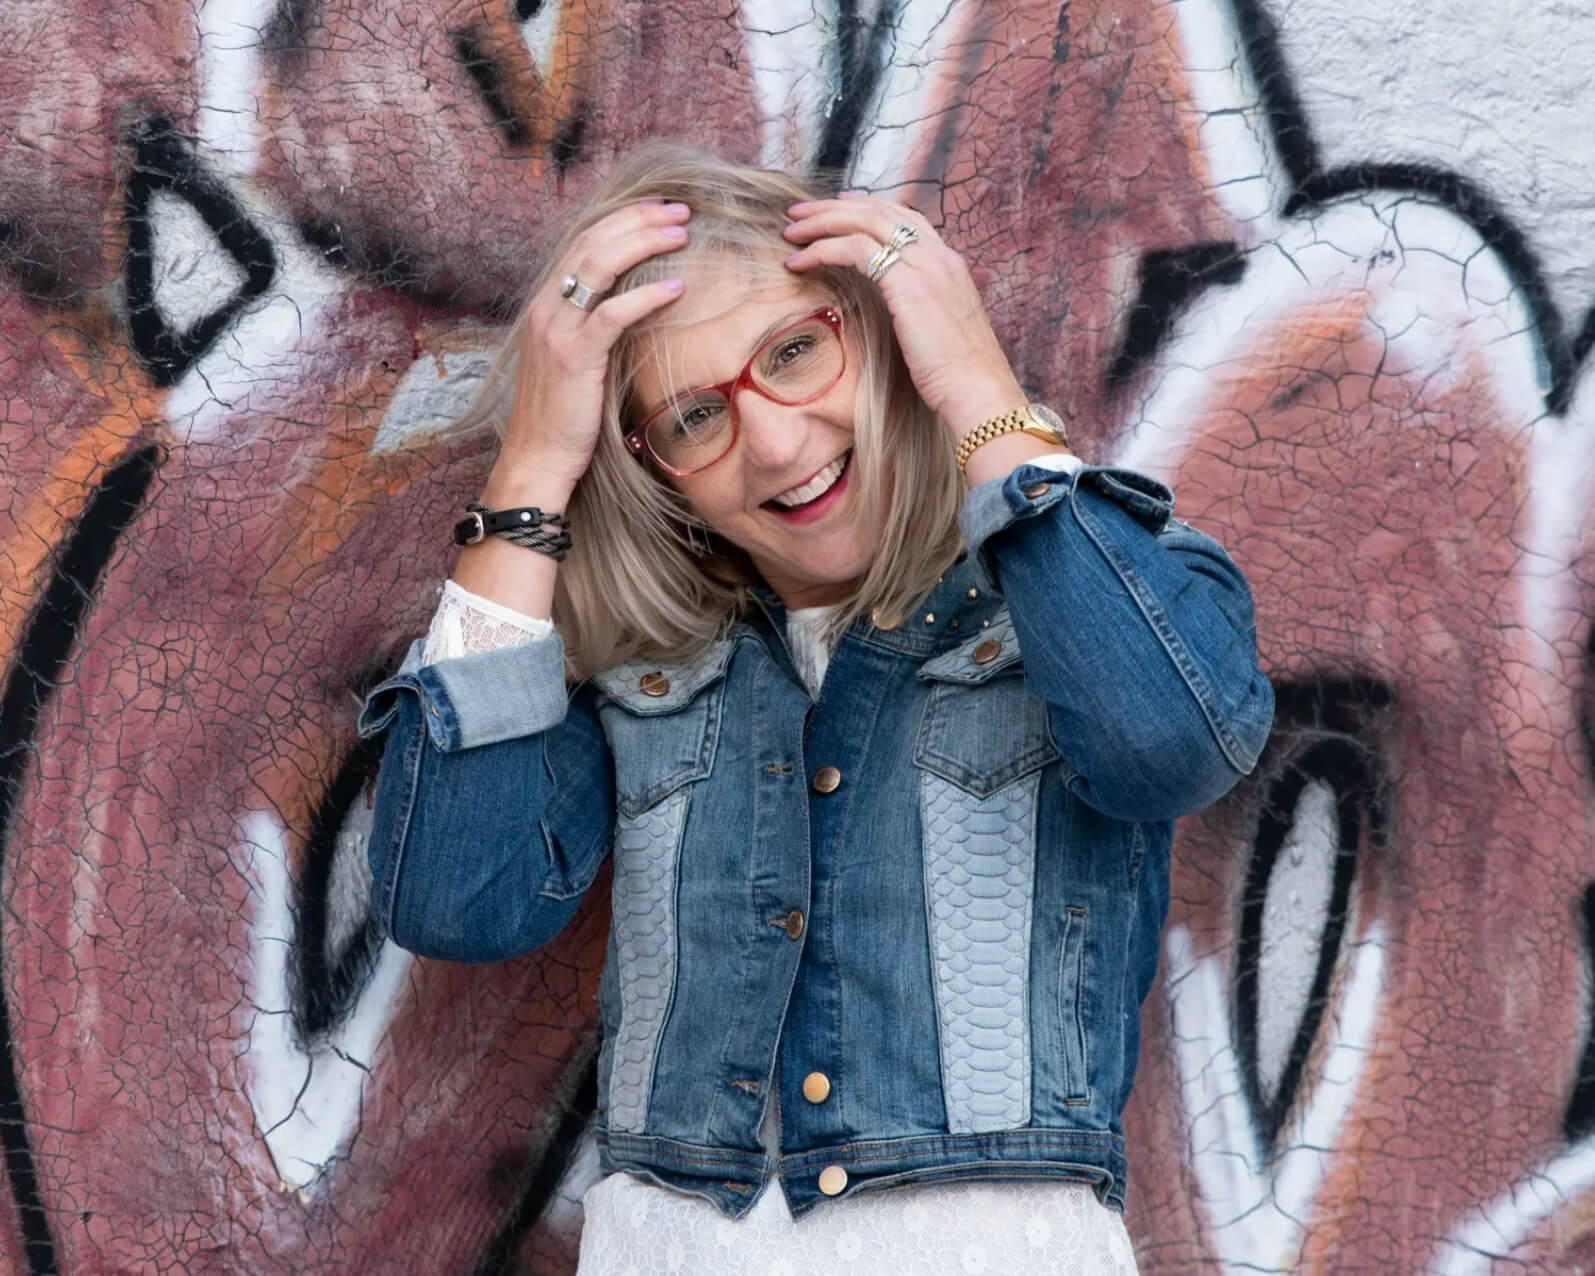 Personal stylist Kerry Cordero being a style rebel in front of a wall with some edgy street art